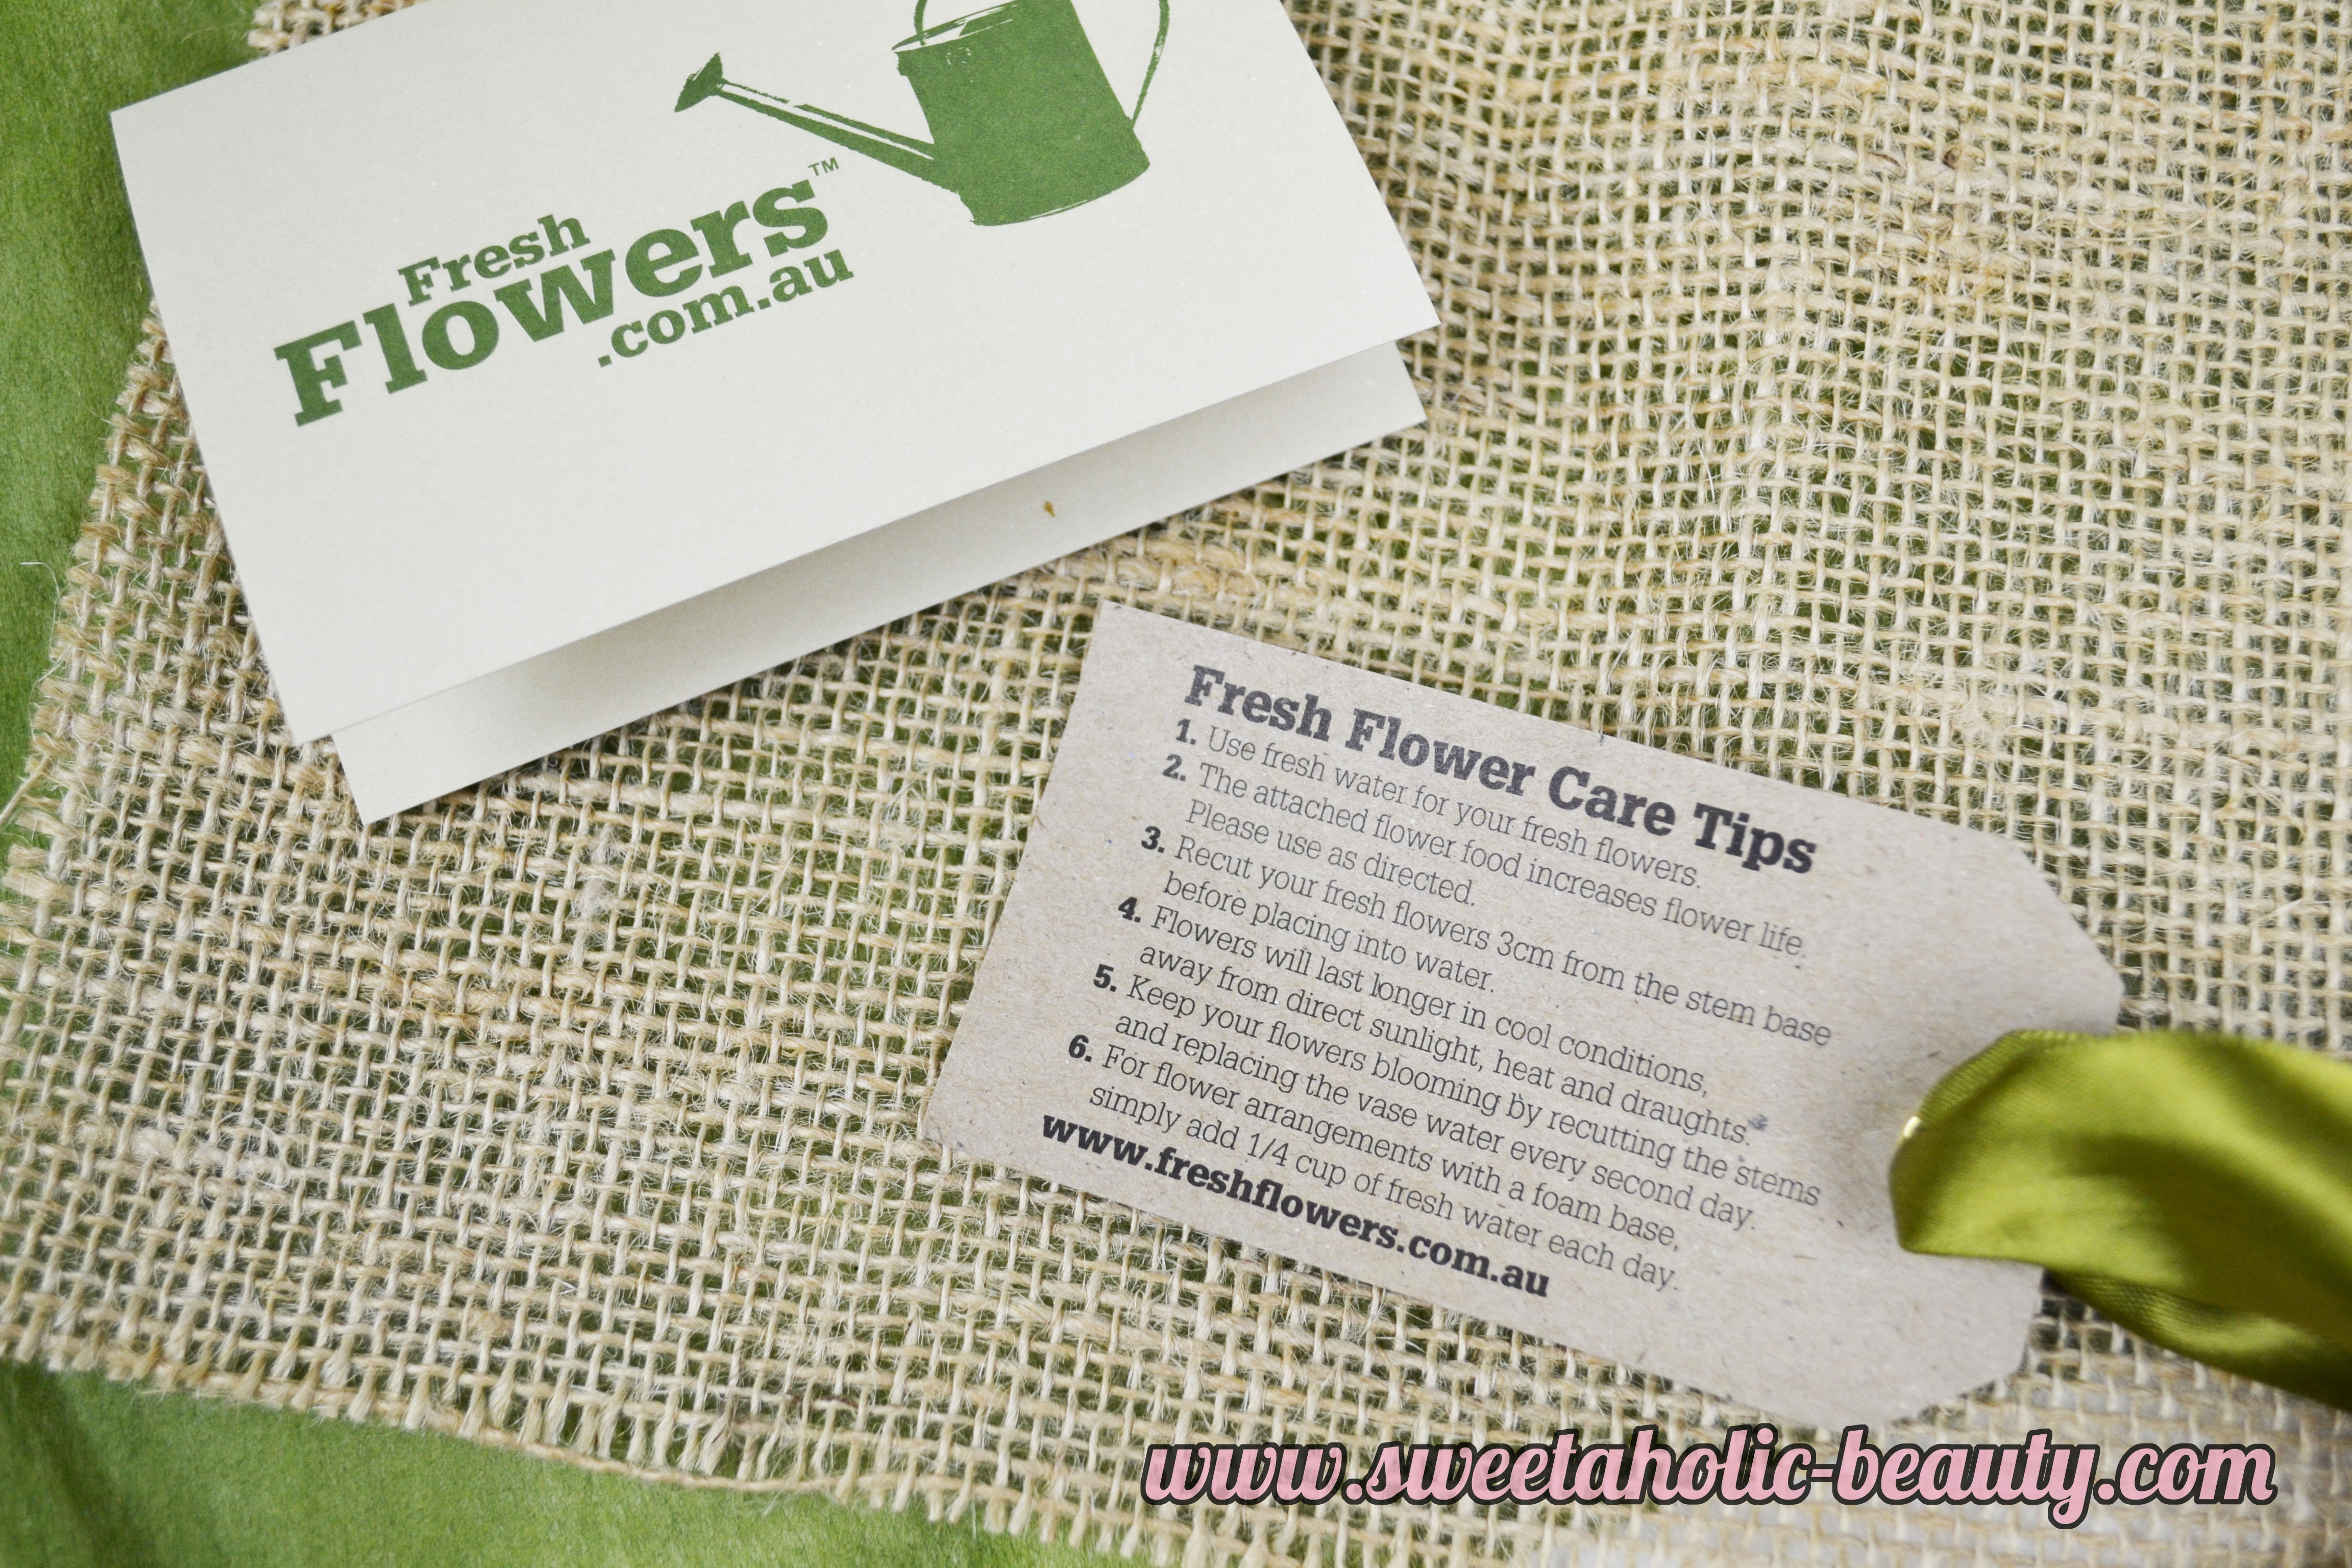 FreshFlowers.com.au Review - Sweetaholic Beauty